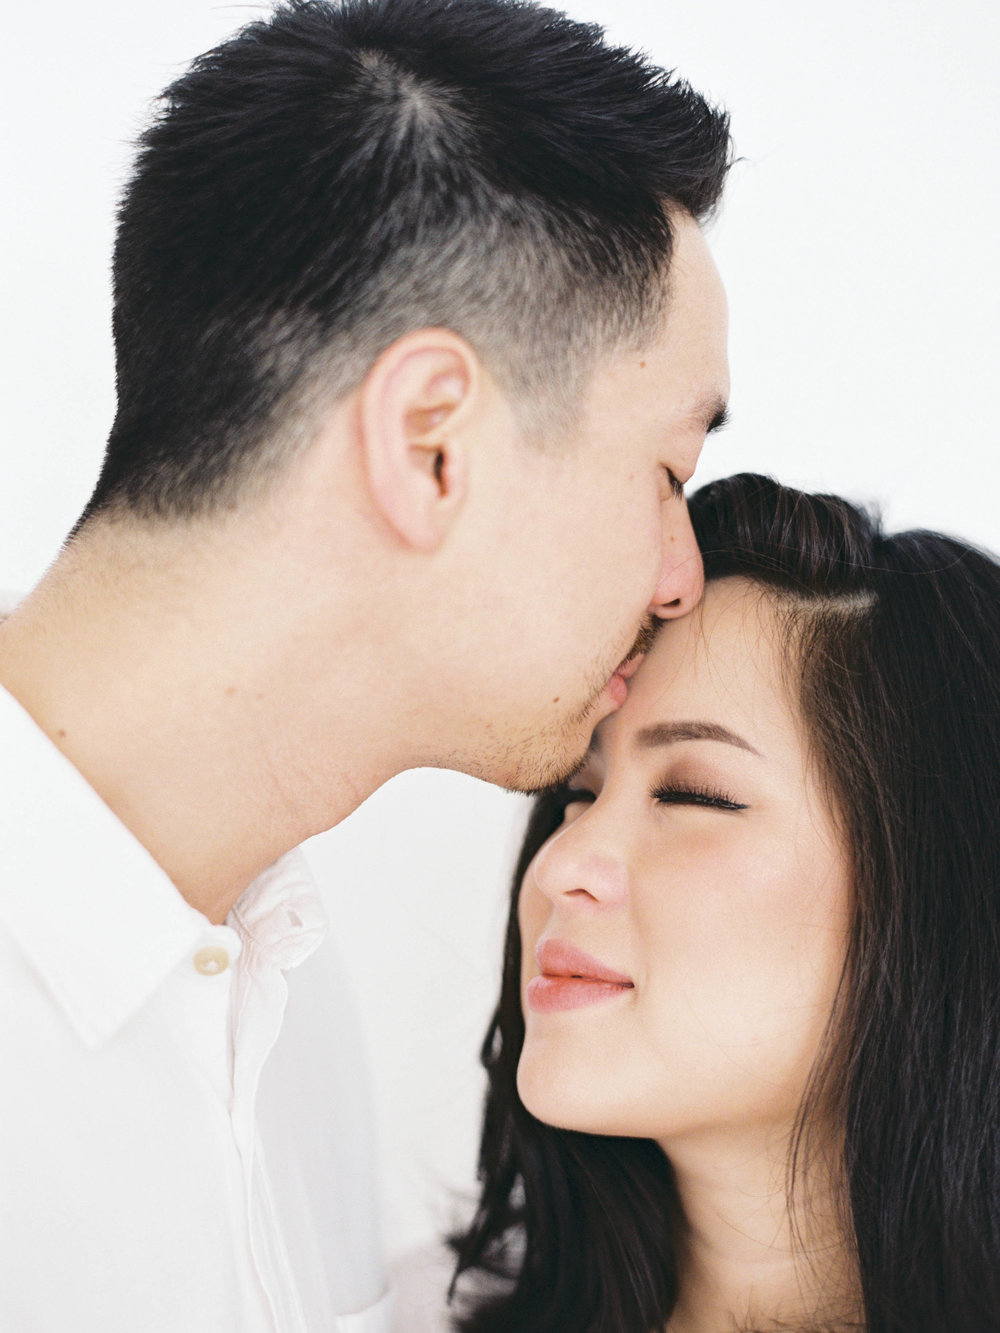 Gaby and Tim-Relaxed-Airy-Simple-Maternity Portrait Photoshoot-At Home-Jakarta-Studio June-Film Photography & Styling-36.jpg